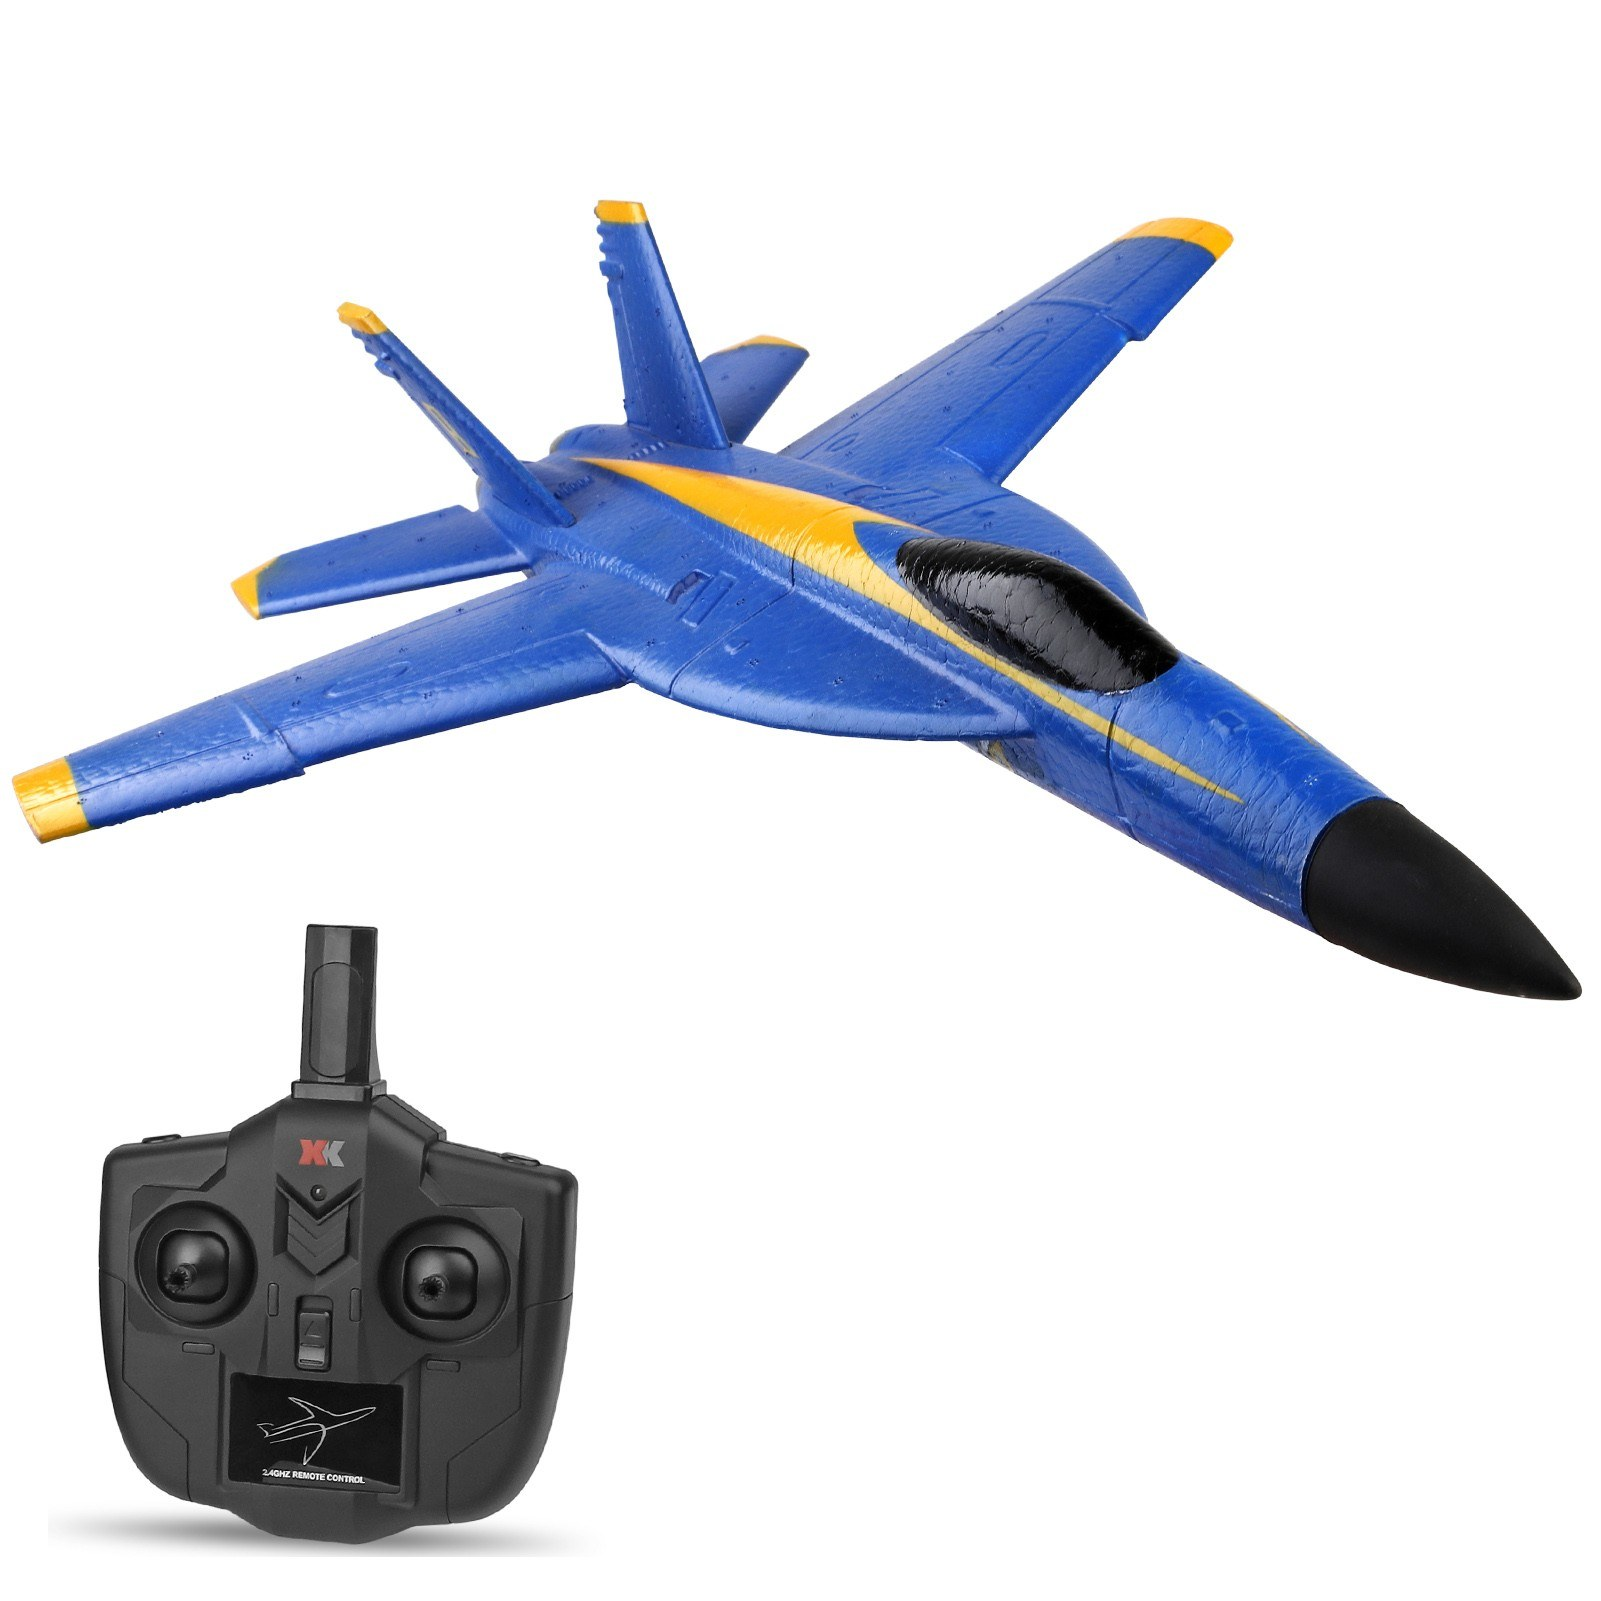 Tomtop - 54% OFF Wltoys XKS A190 2.4G 2CH RC Airplane Flying Aircraft for Beginner, Free Shipping $63.99